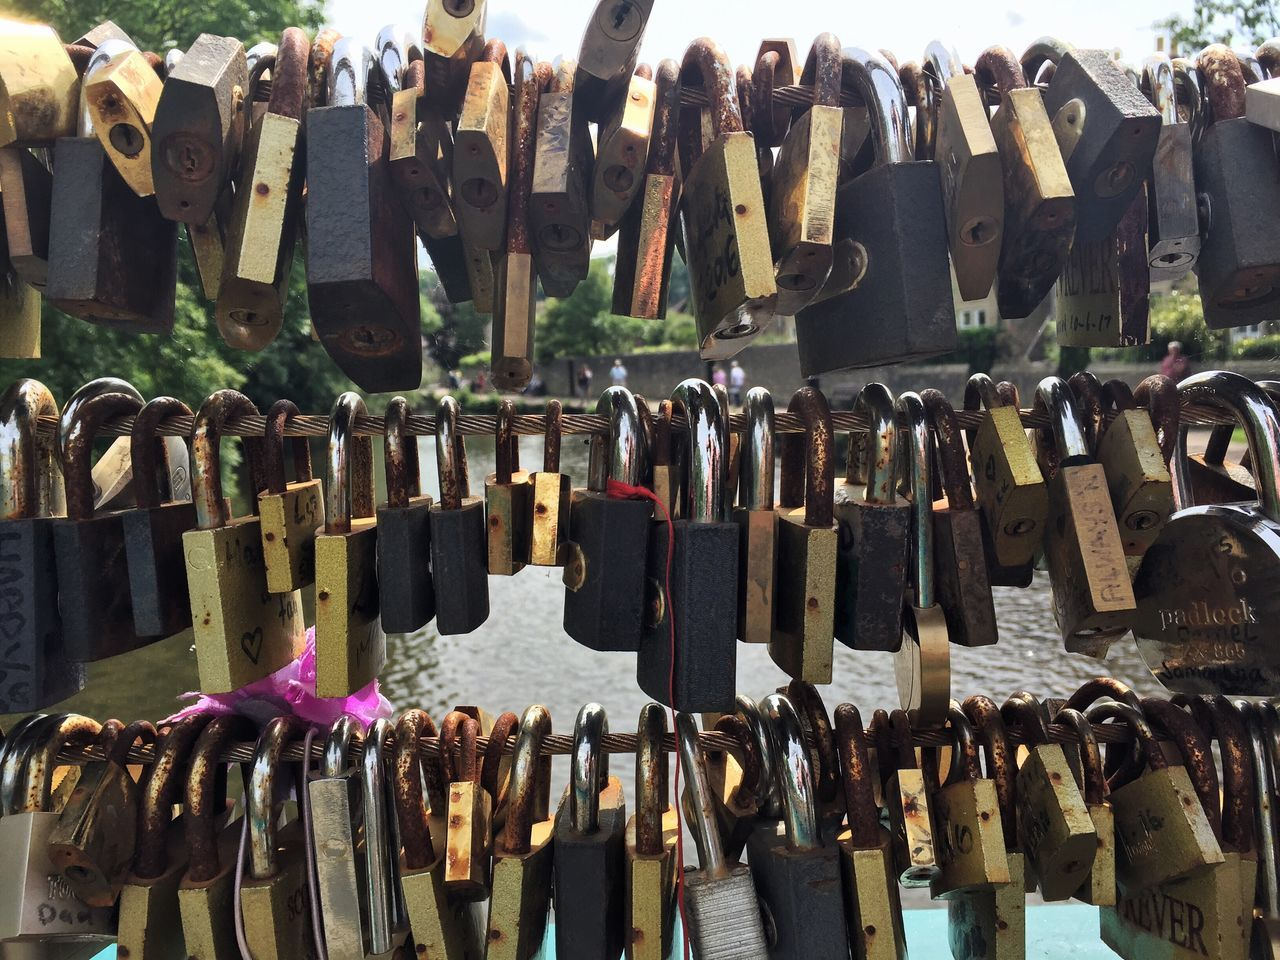 Hanging Large Group Of Objects Abundance No People Variation Padlock Metal Outdoors Day Hope Love Lock Close-up Love Locks